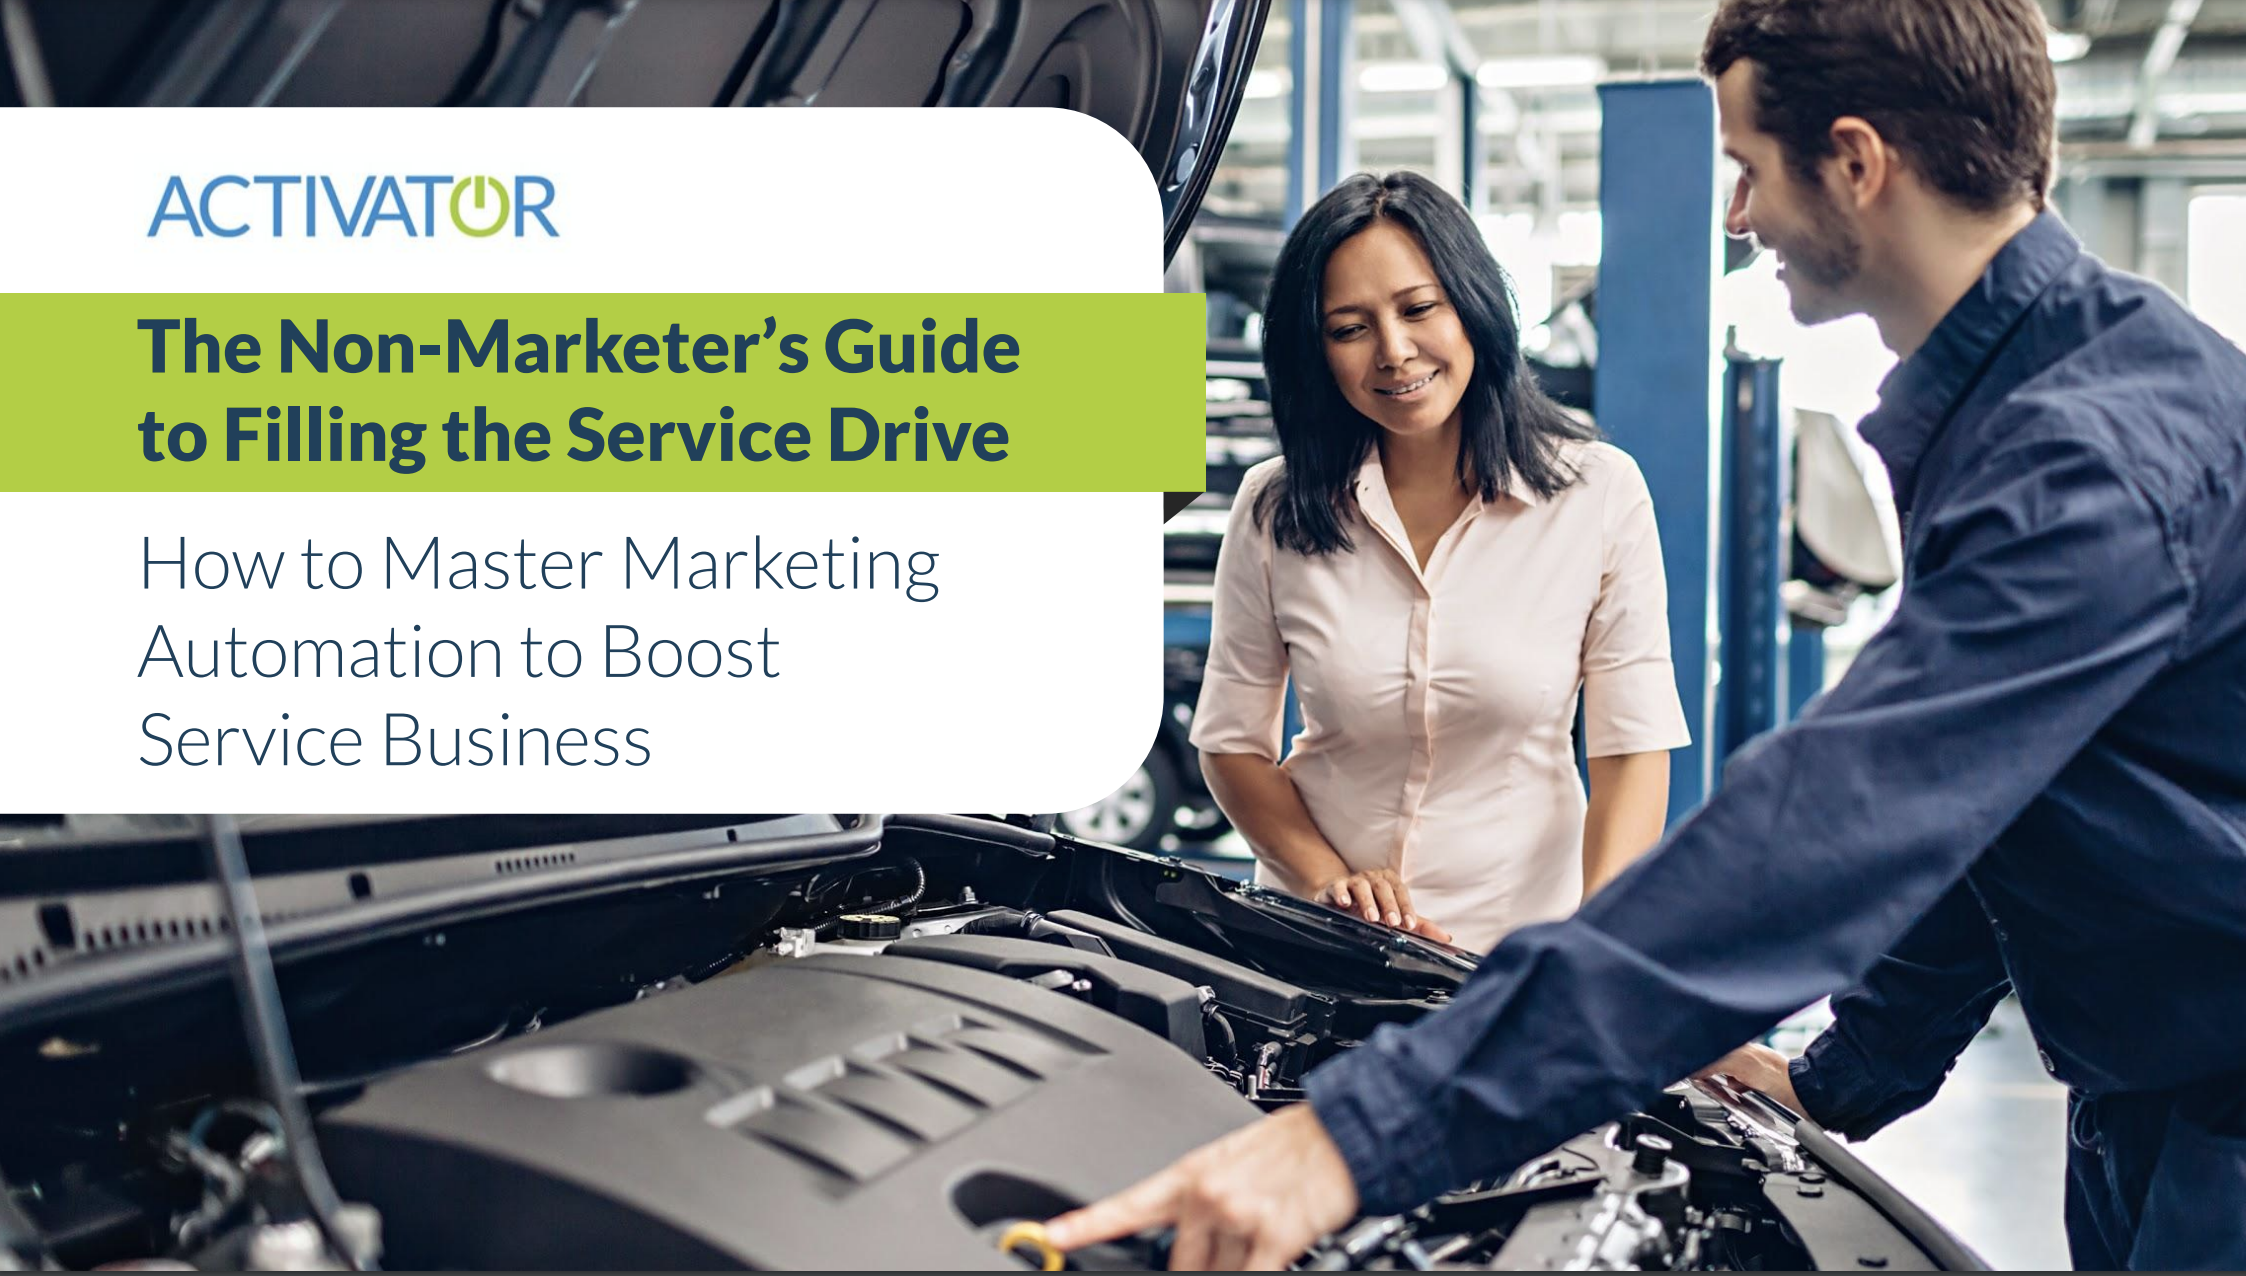 The Non-Marketer's Guide to Filling the Service Drive